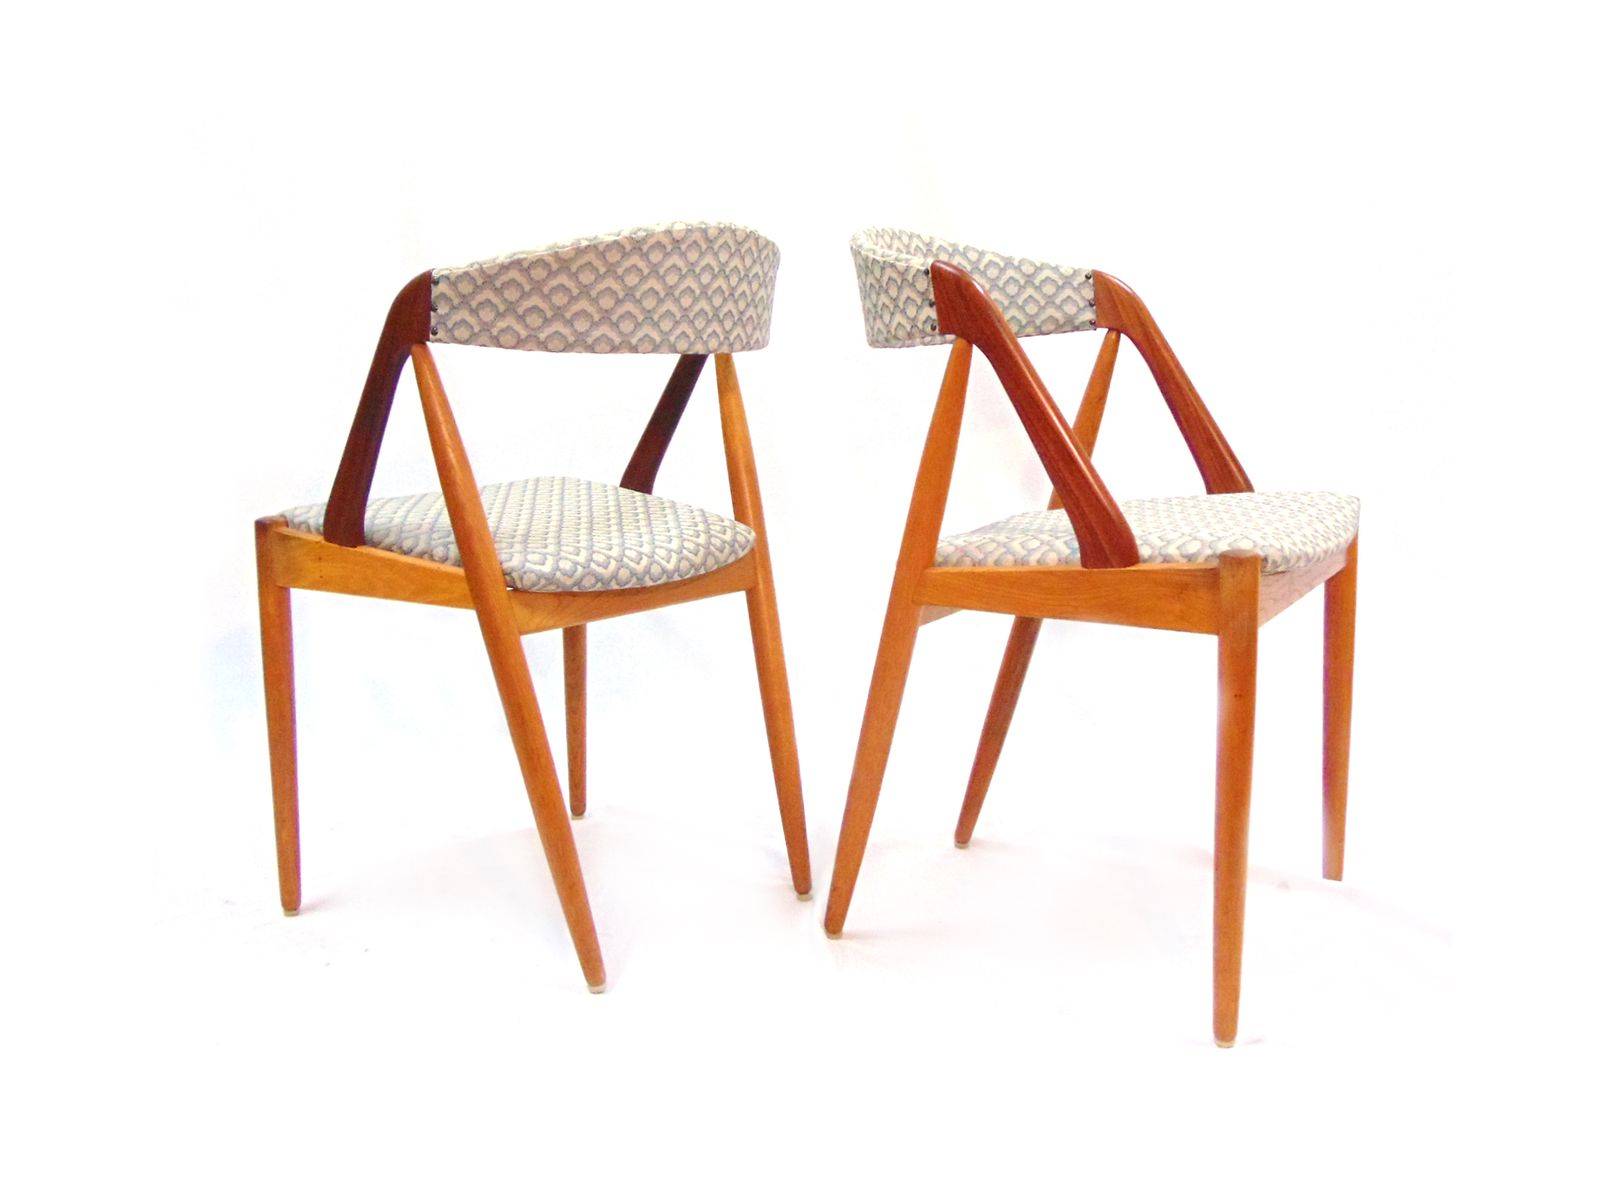 Mid Century Dining Chairs in Teak and Linen by Kai Kristiansen for